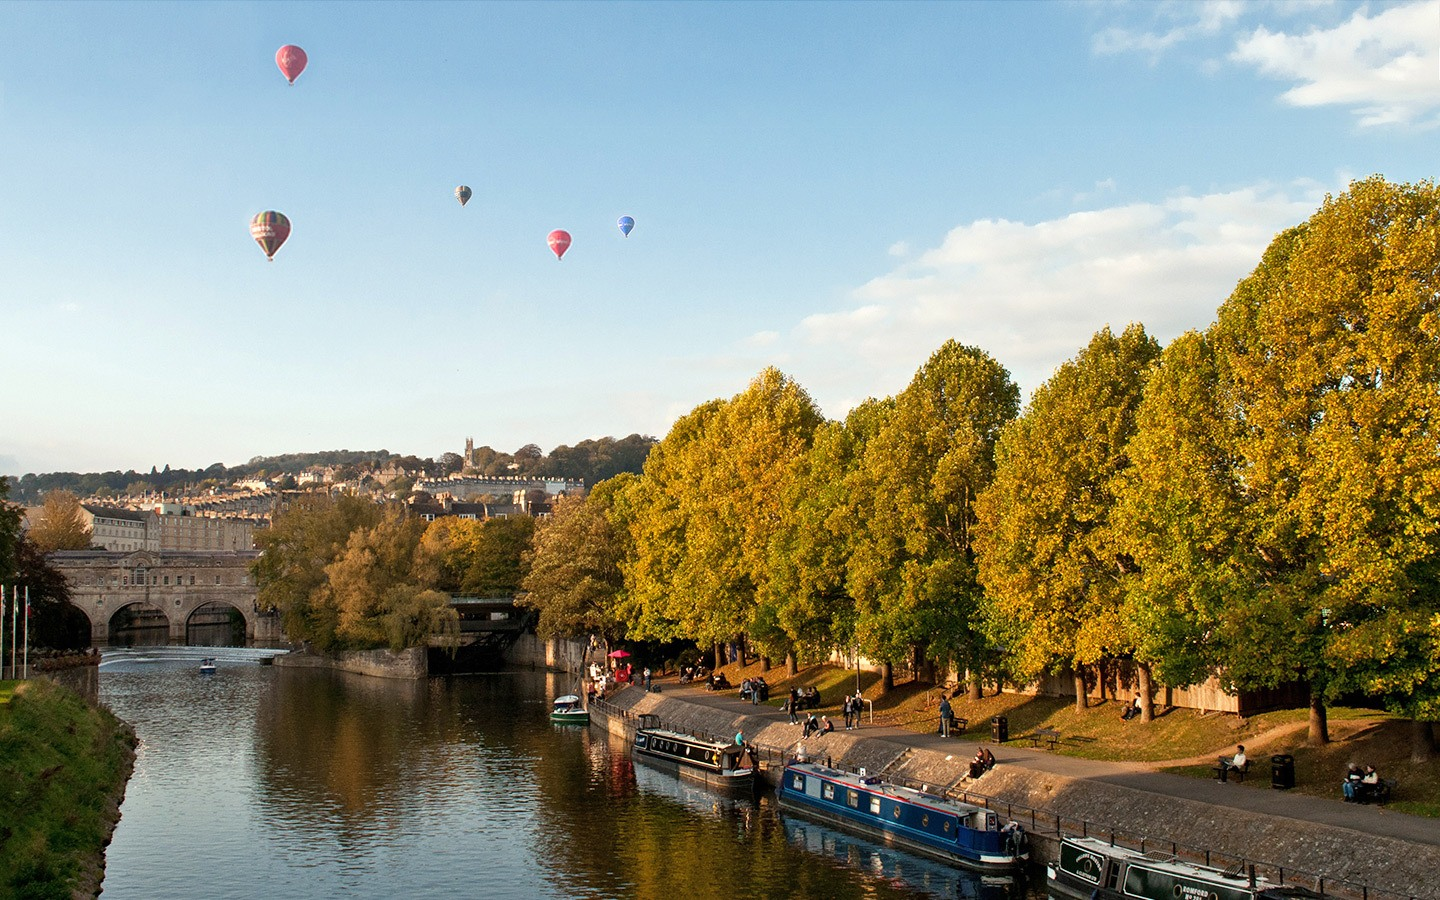 Balloon ride over Bath, England